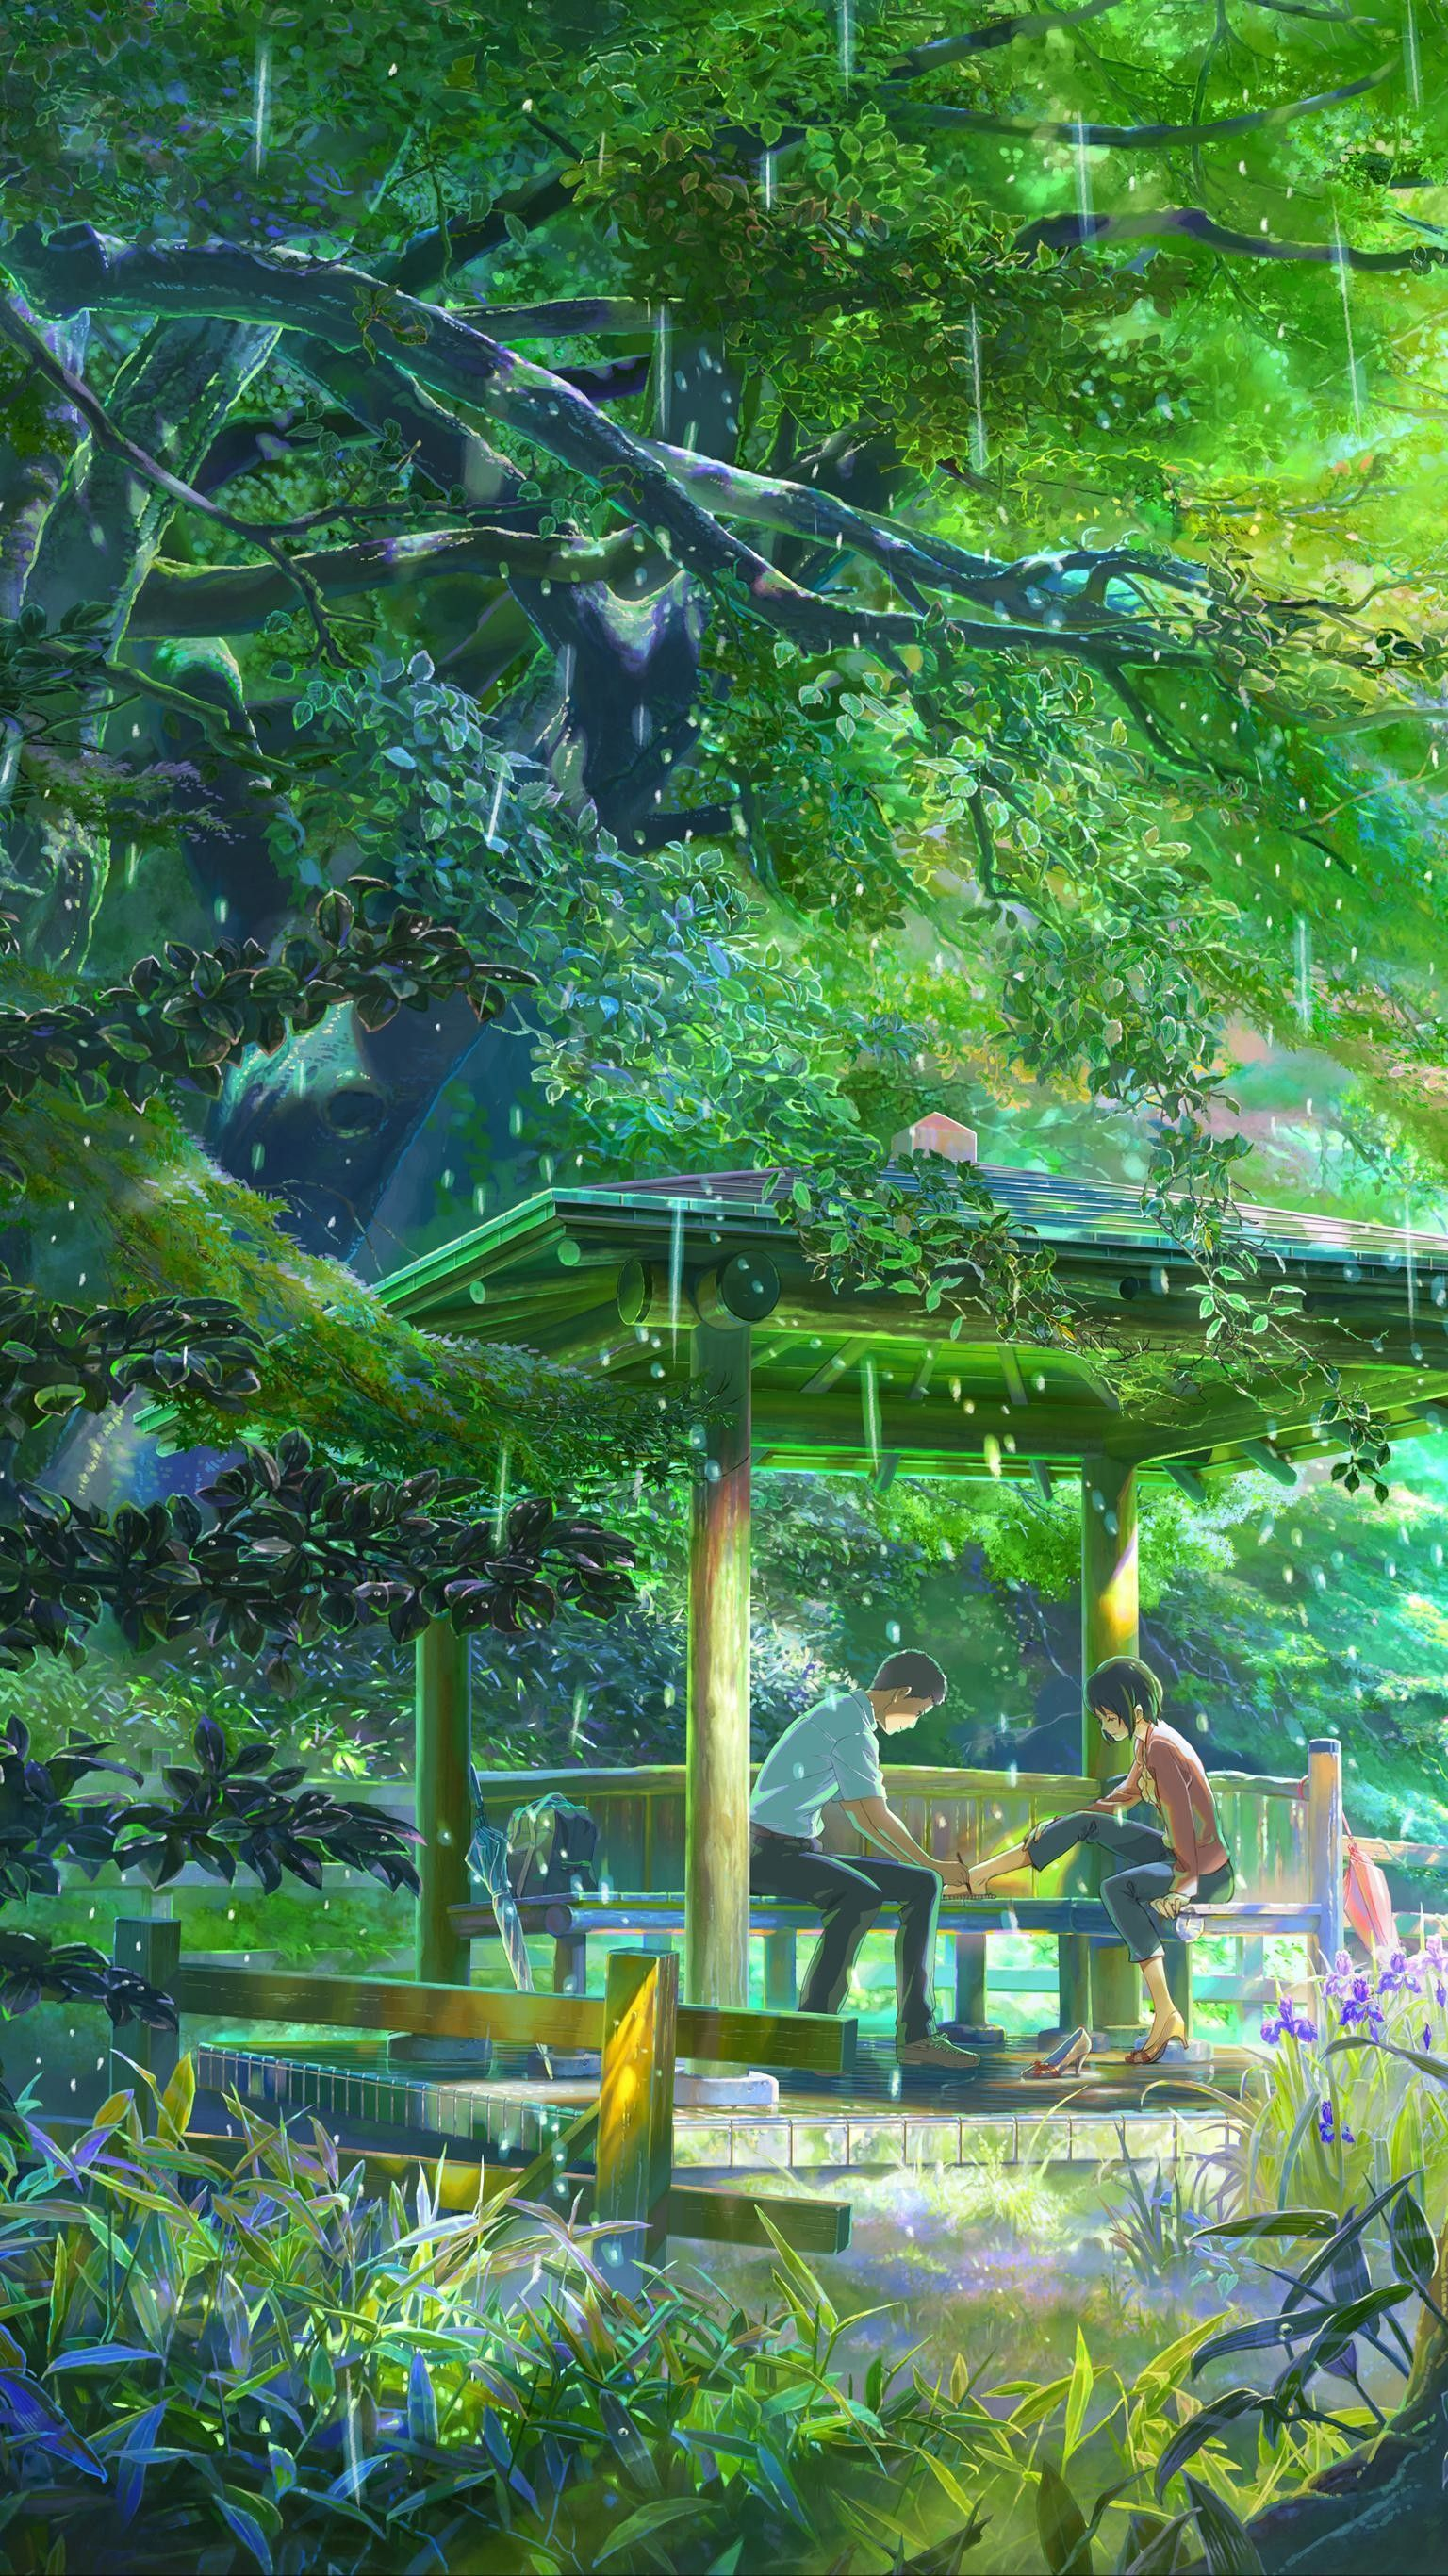 24 Beautifull Garden Background Anime To Save Your Space Anime Backgrounds Wallpapers Anime Scenery Wallpaper Garden Of Words 24 gif wallpaper anime